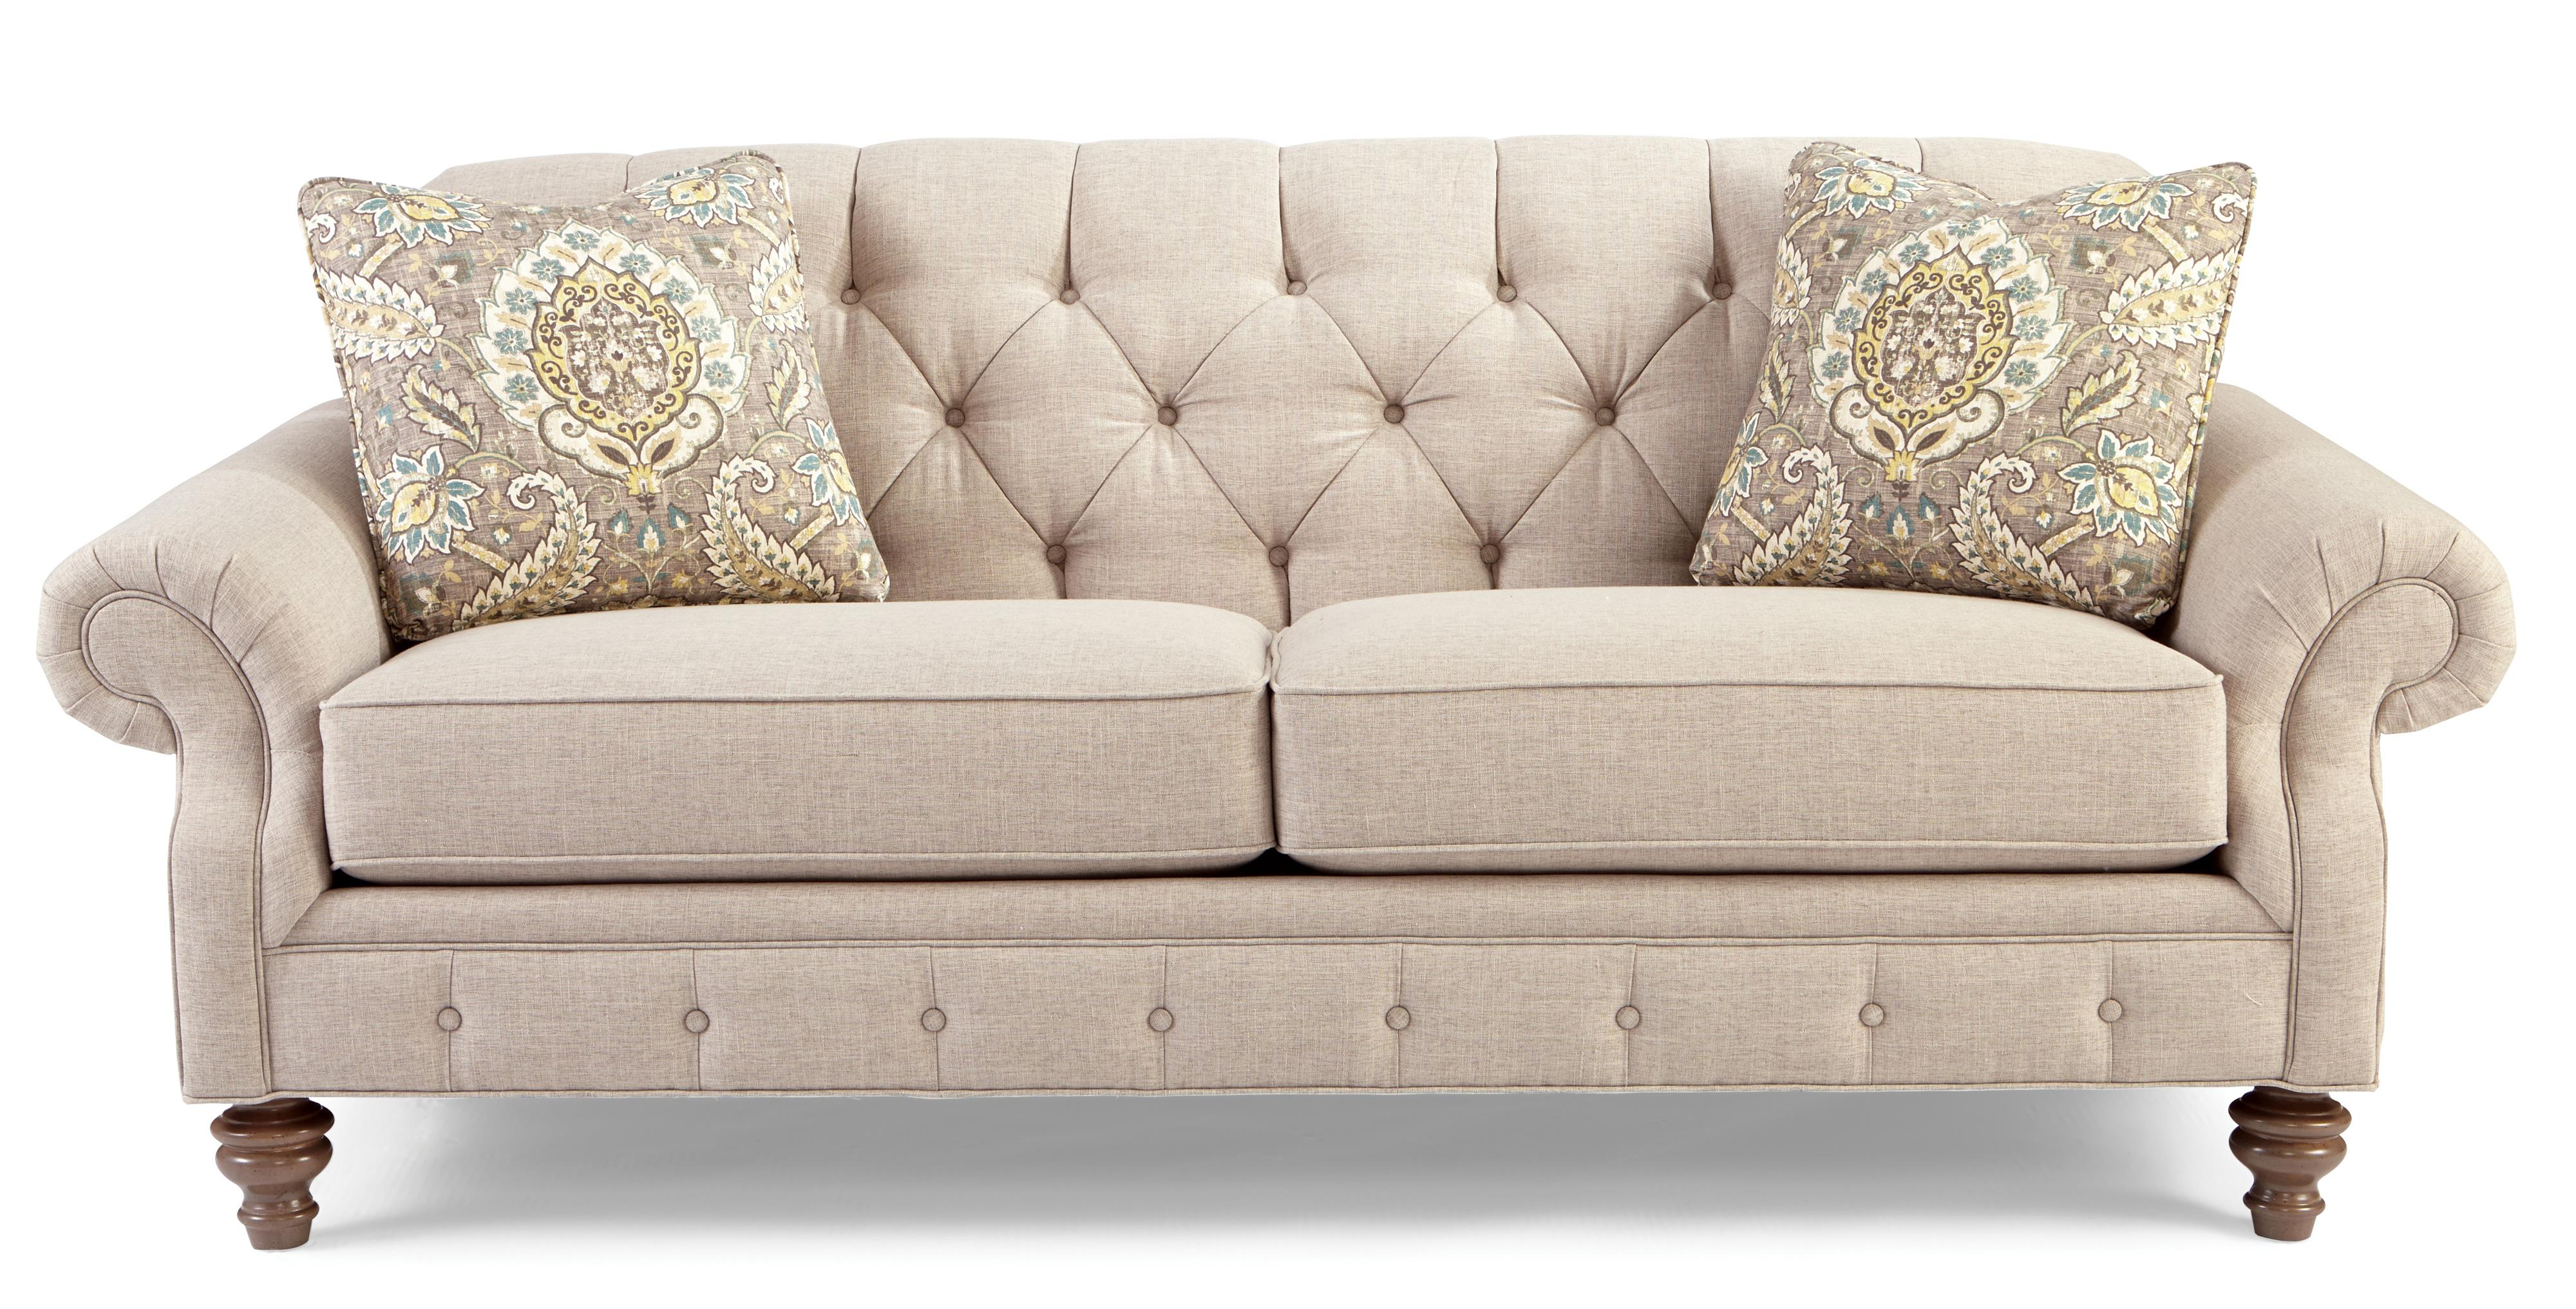 pink tufted sofa for sale water resistant covers craftmaster 7463 746350 traditional button